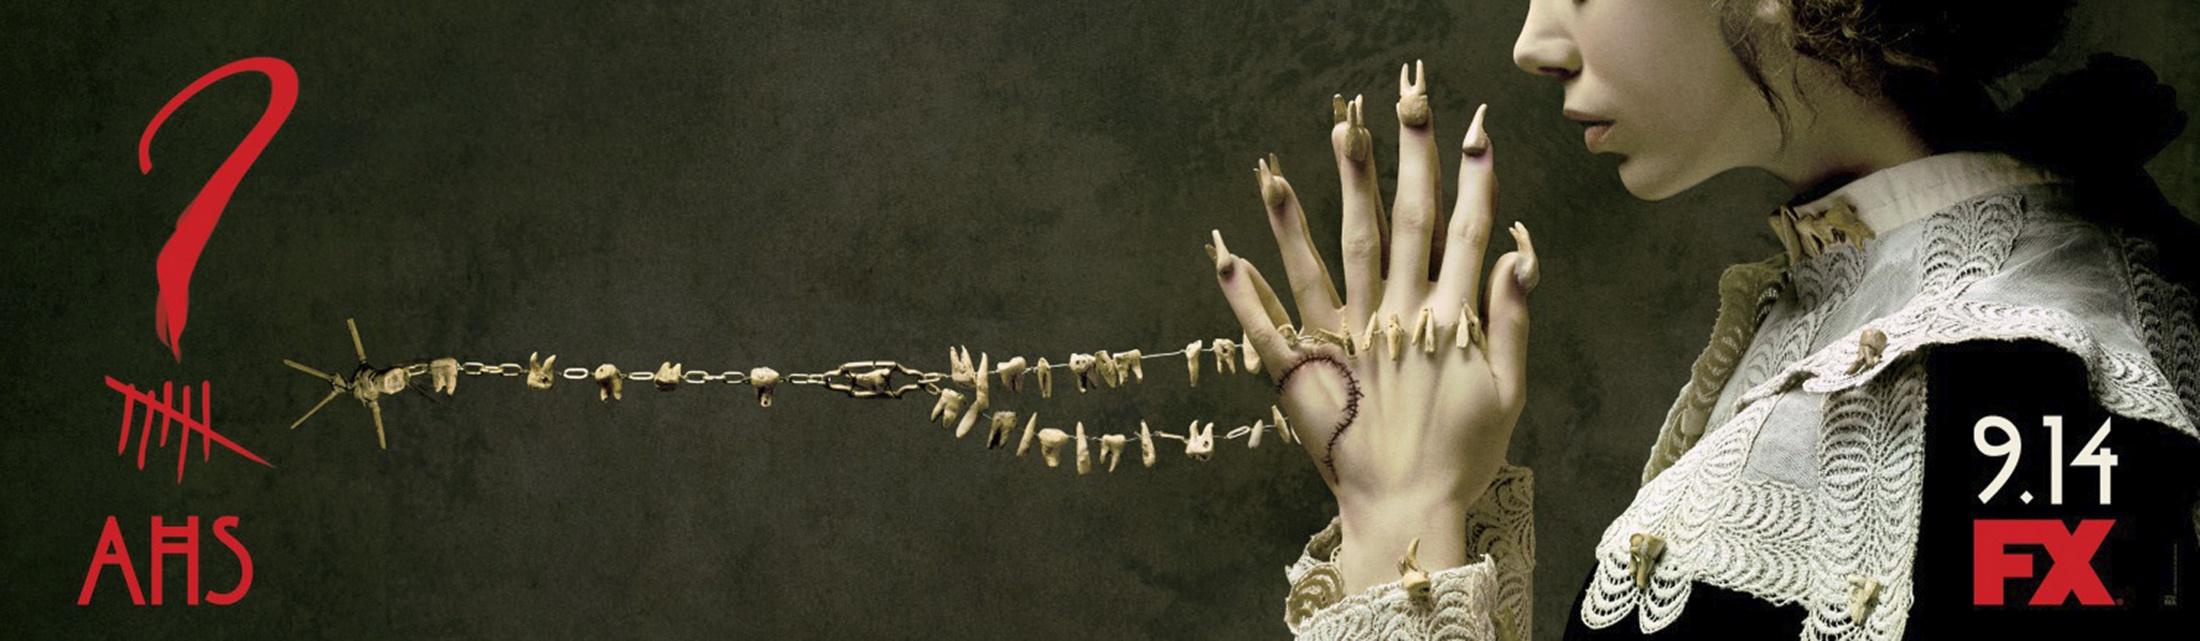 Thumbnail for American Horror Story - Roanoke payoff billboard